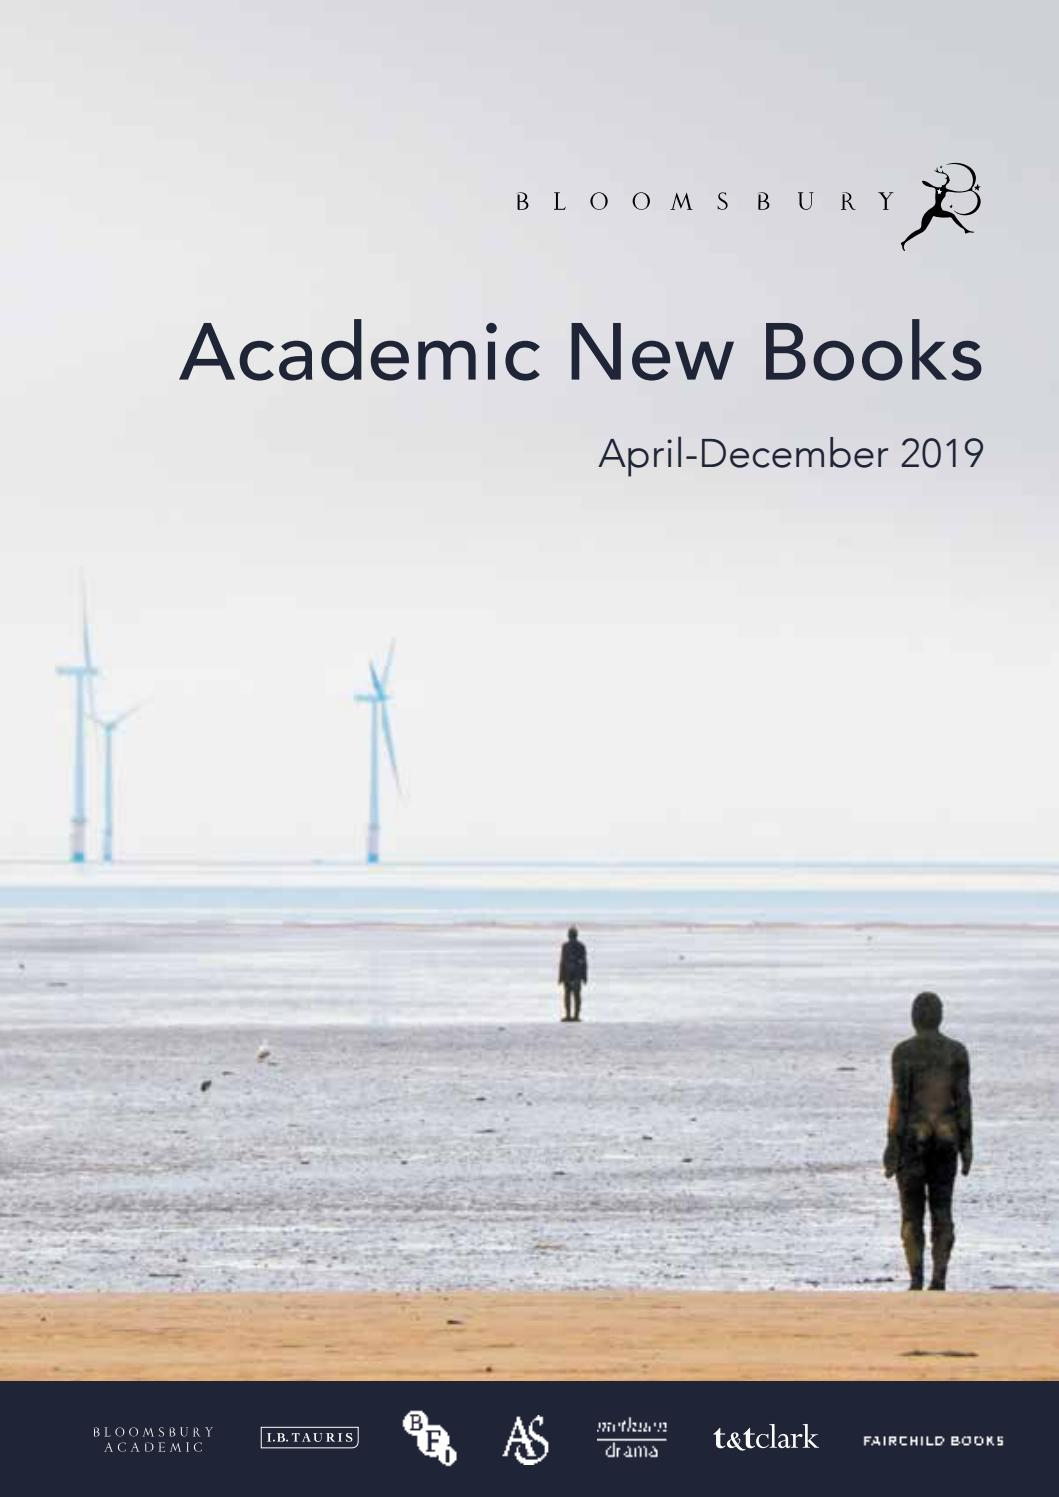 Bloomsbury Academic Catalogue April-December 2019 by